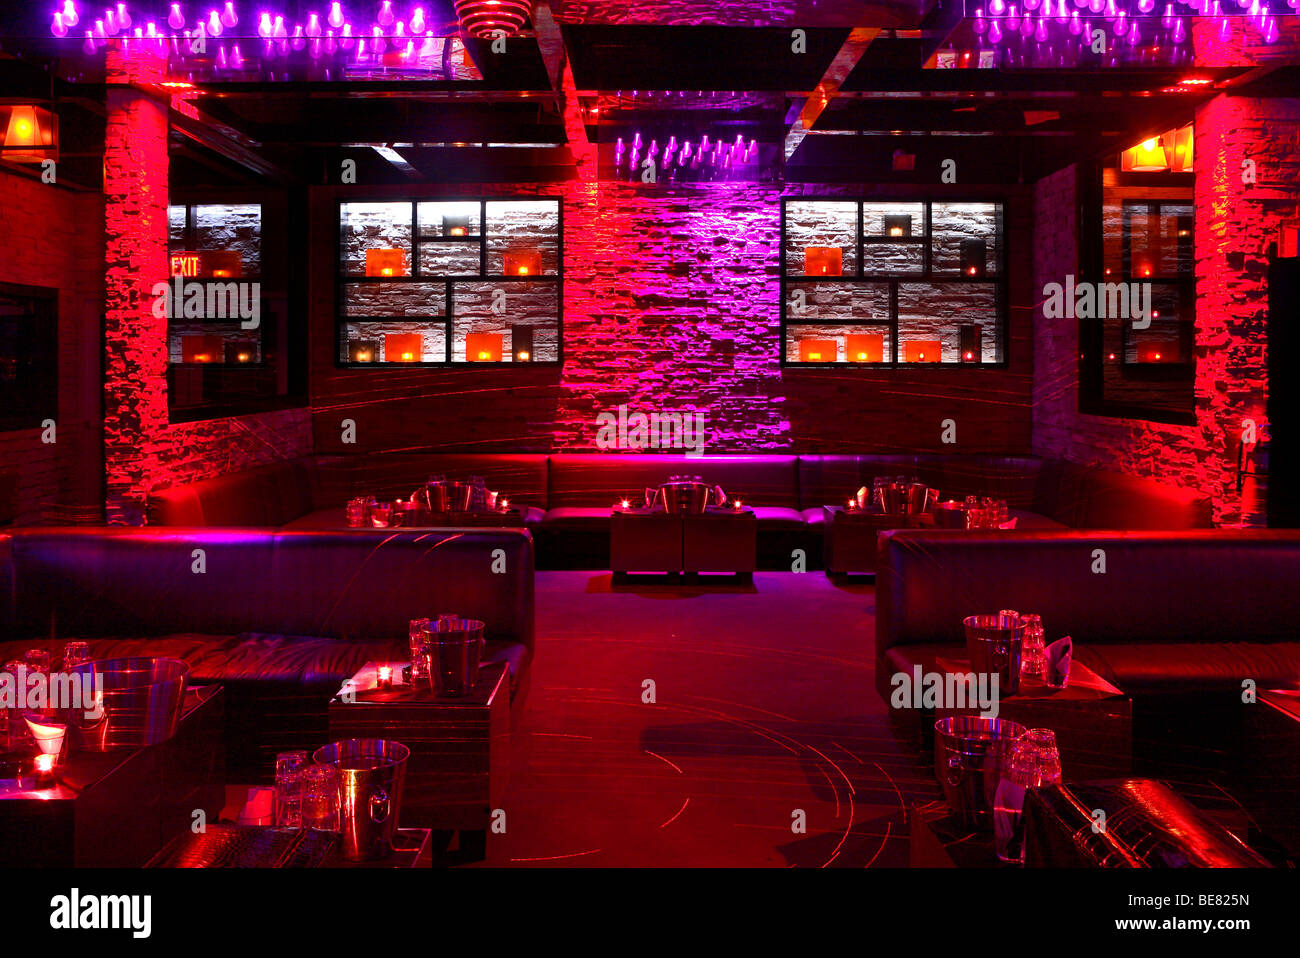 Interior View Of The Deserted Mokai Nightclub, South Beach, Miami Beach,  Florida,